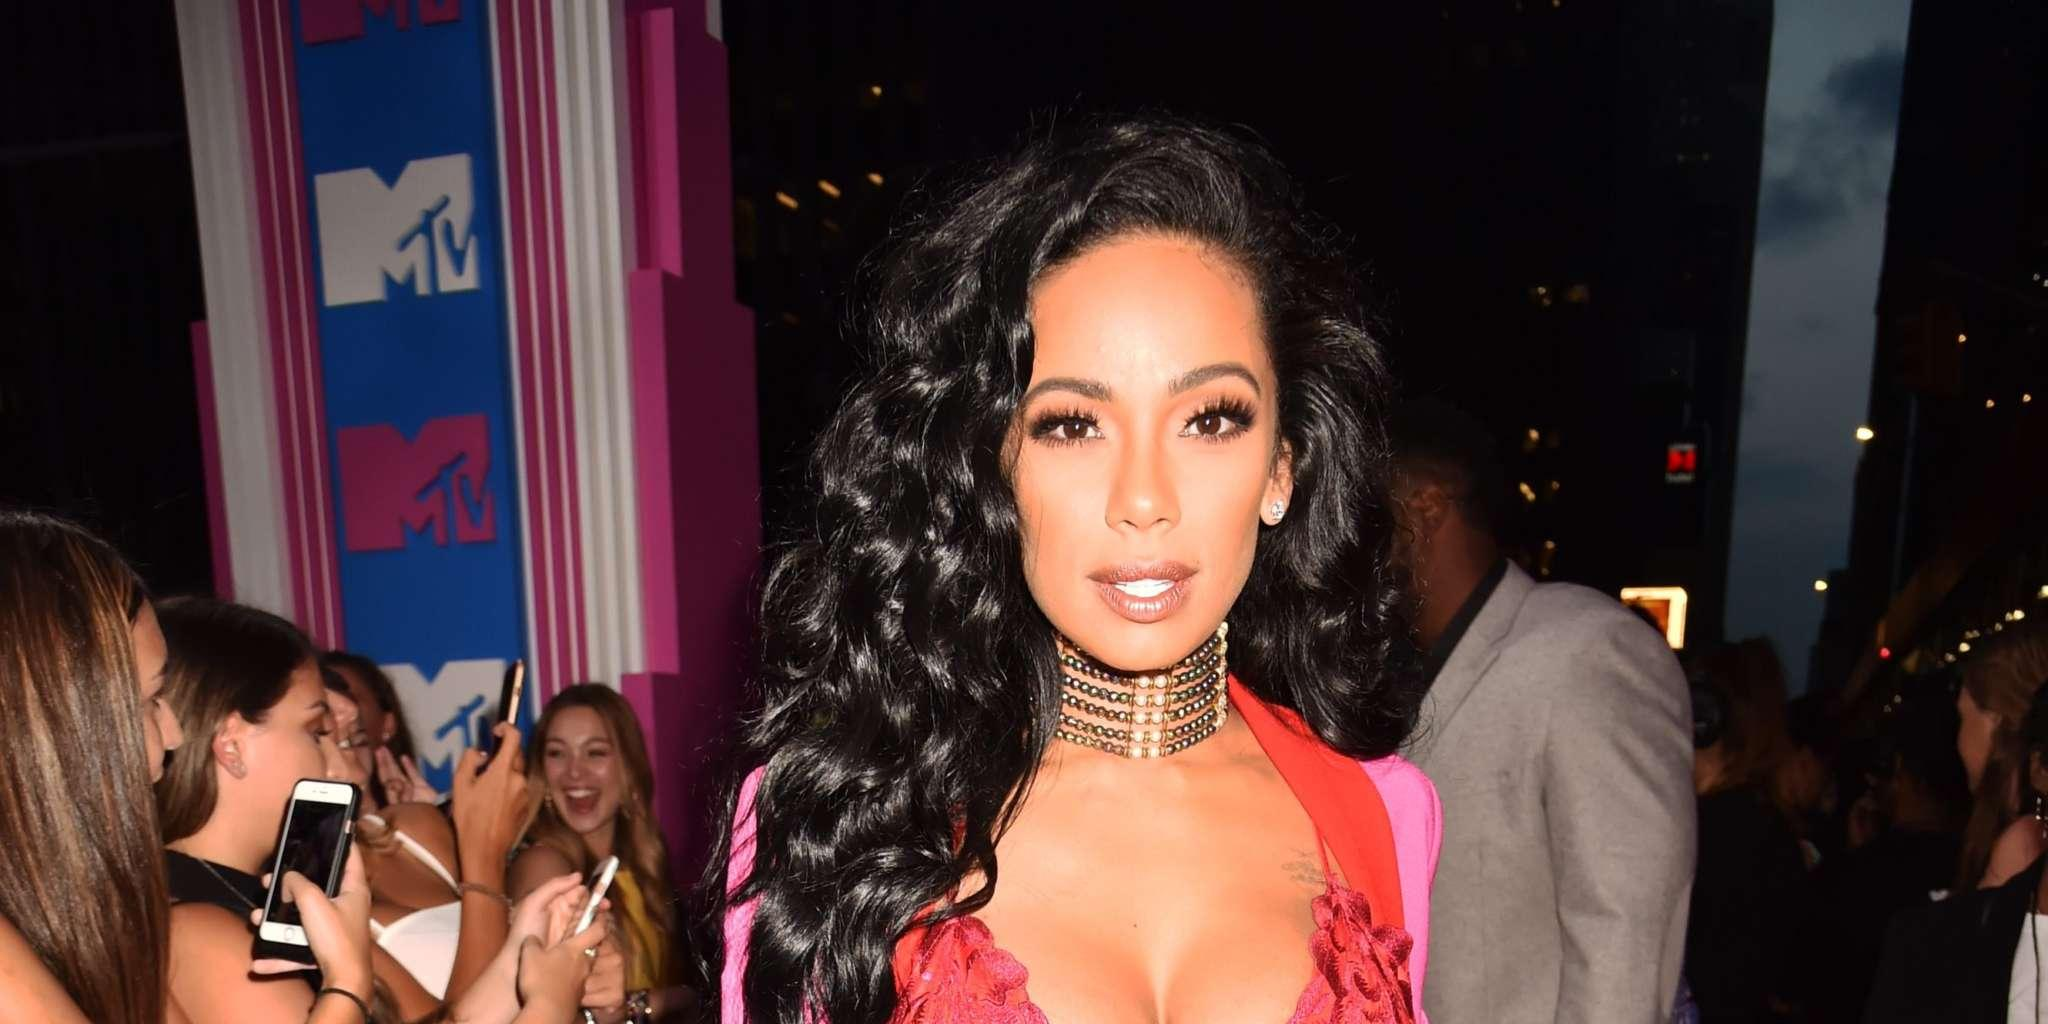 Erica Mena Finally Reveals Her Daughter's Gorgeous Face Following Safaree's Alleged Breakup Post - See The Amazing Pics!